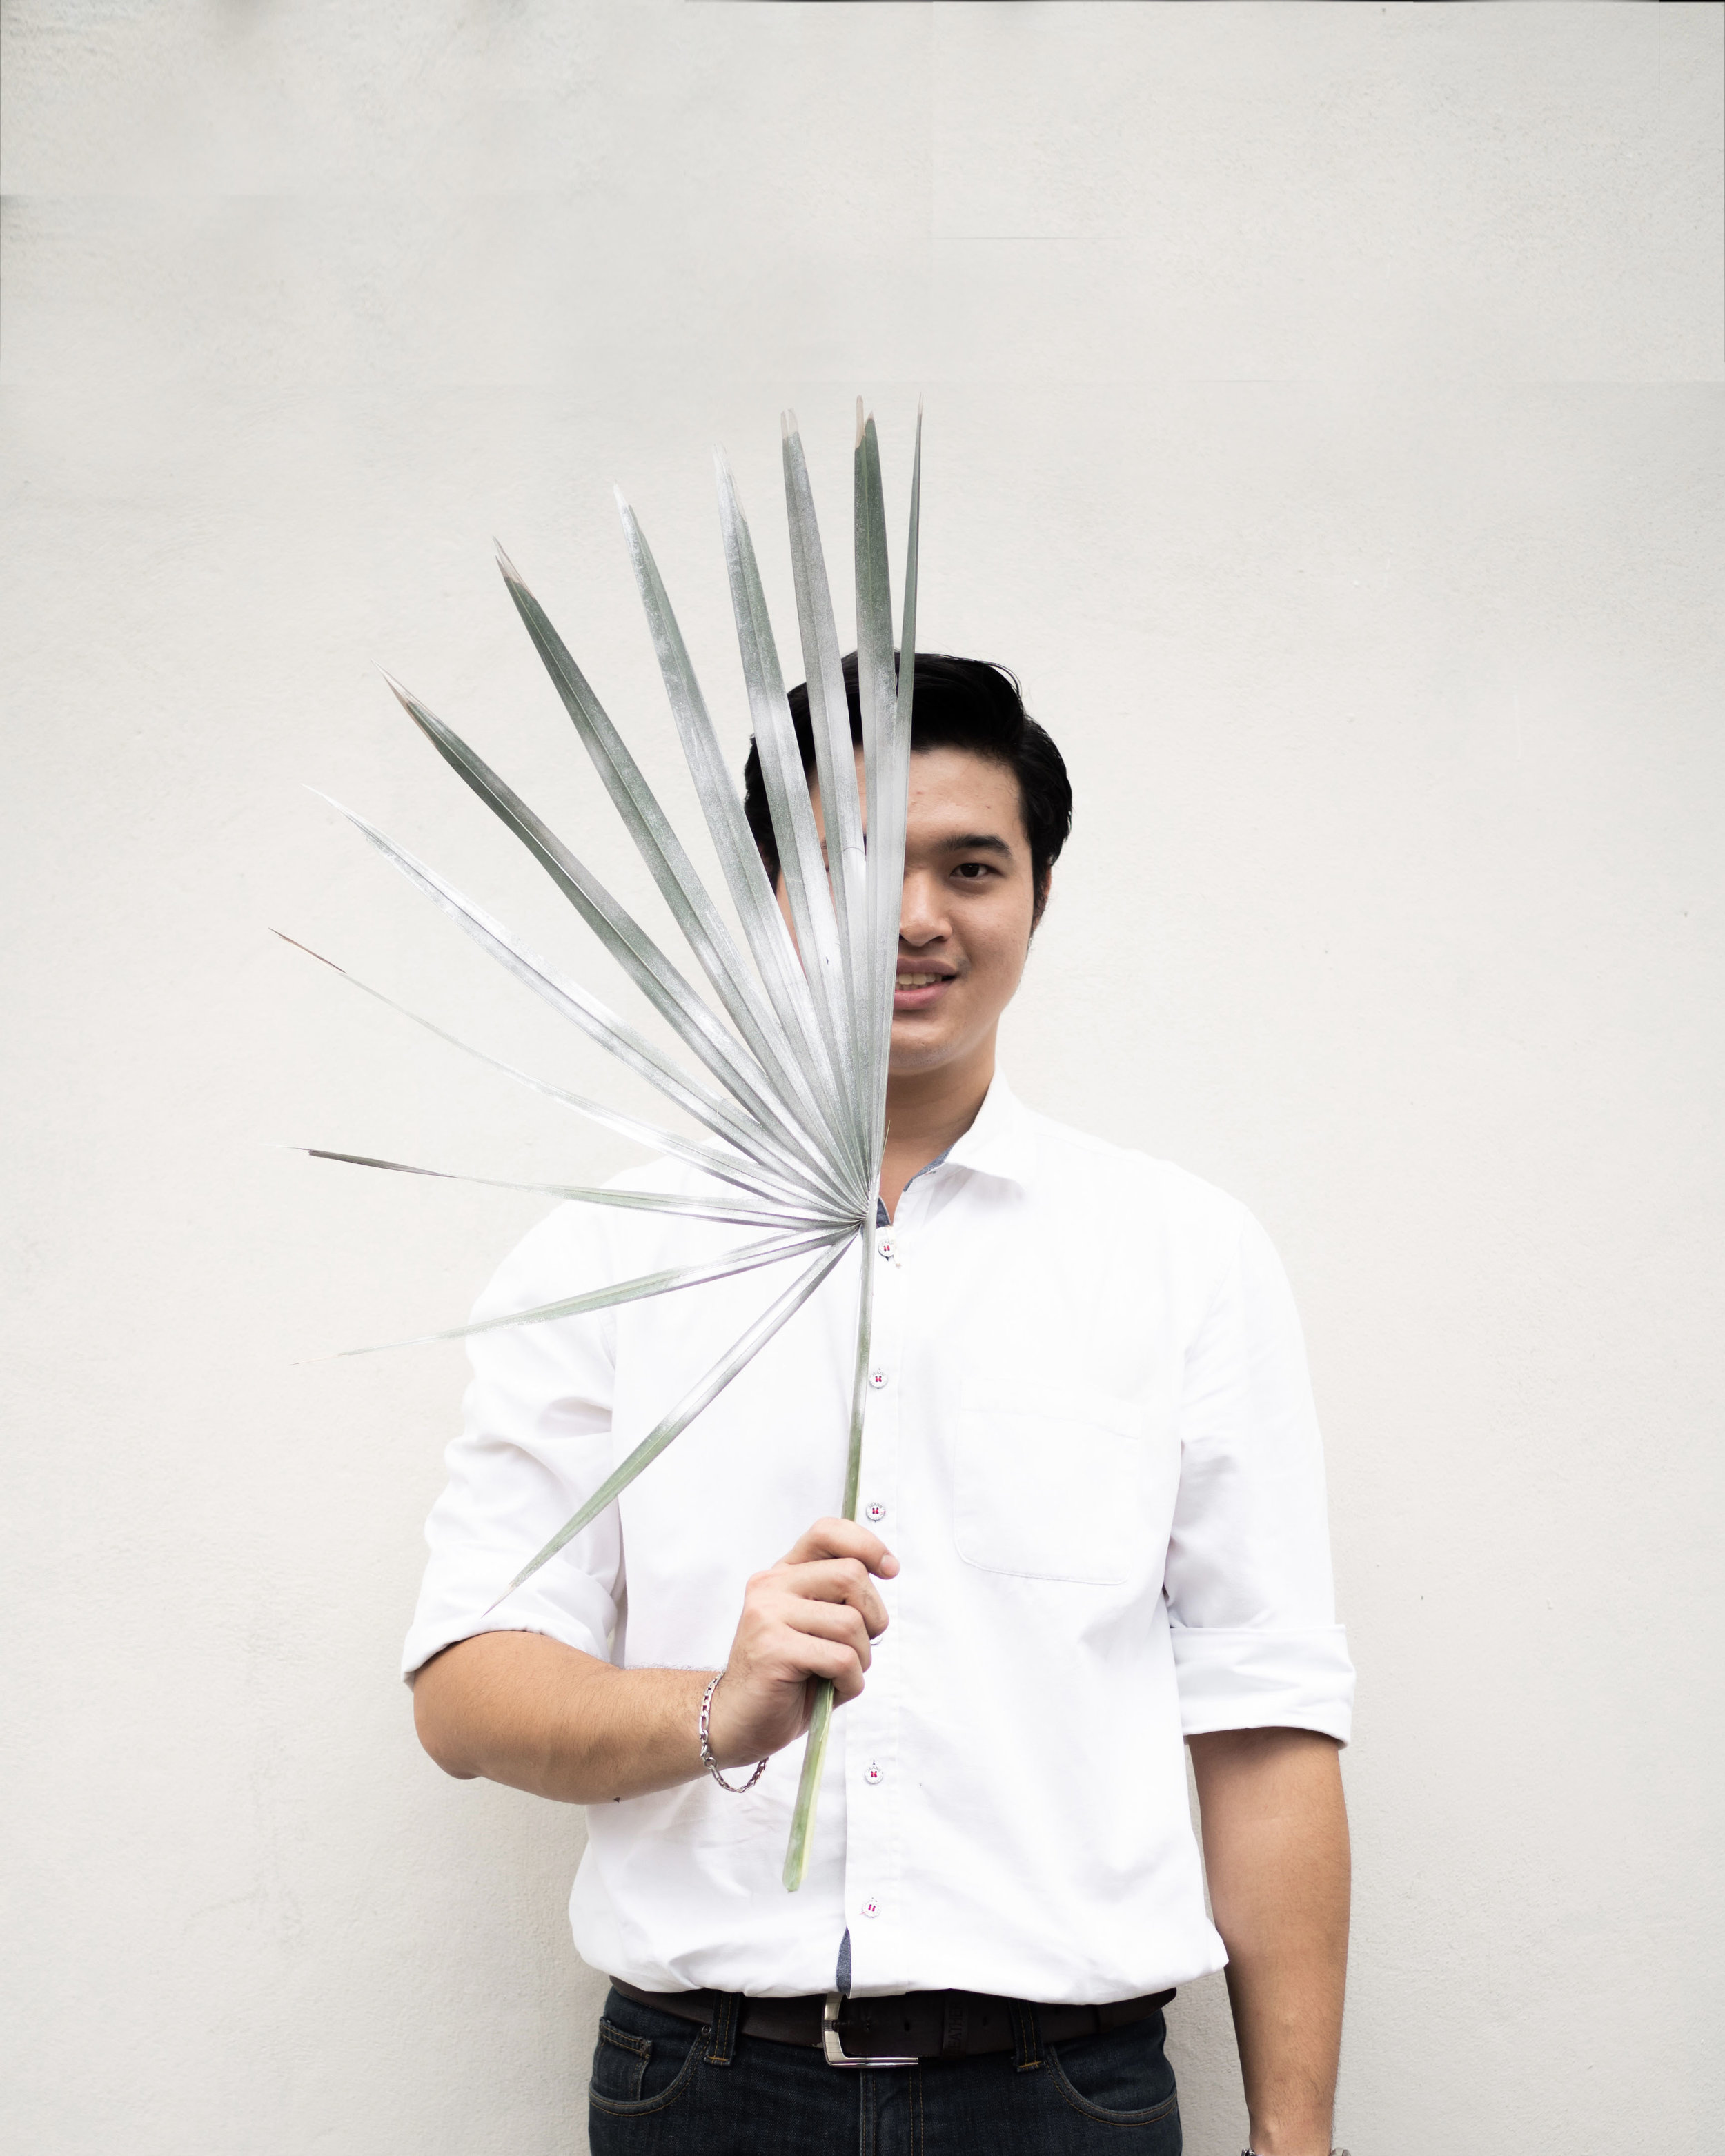 Second floral horticulturist of the team. Boss had an internship at PHKA before finished his study B.A. (Home Economics). at Suan Dusit School of Culinary Arts in 2018. Strengthening the florist team, Boss also handling development of detailed floral craft before an on-site installation. Finding rare materials and assembling them together for a unique piece is his expertise.  charoenkit@phkastudio.com